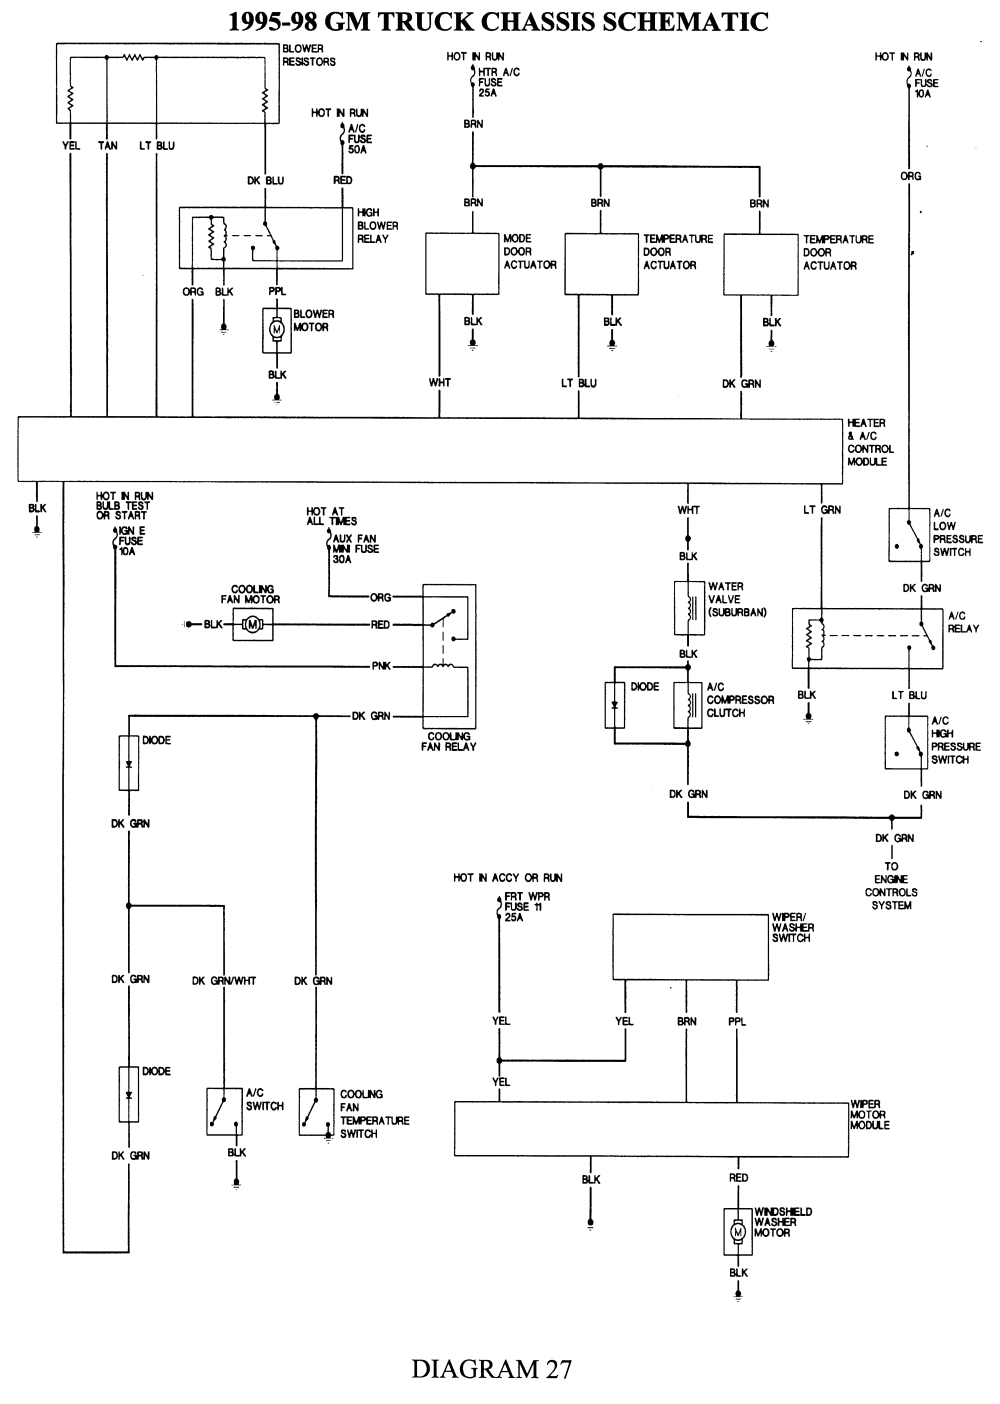 blower motor wiring 1991 chevy 1500 wiring diagrams show repair guides wiring diagrams wiring diagrams autozone